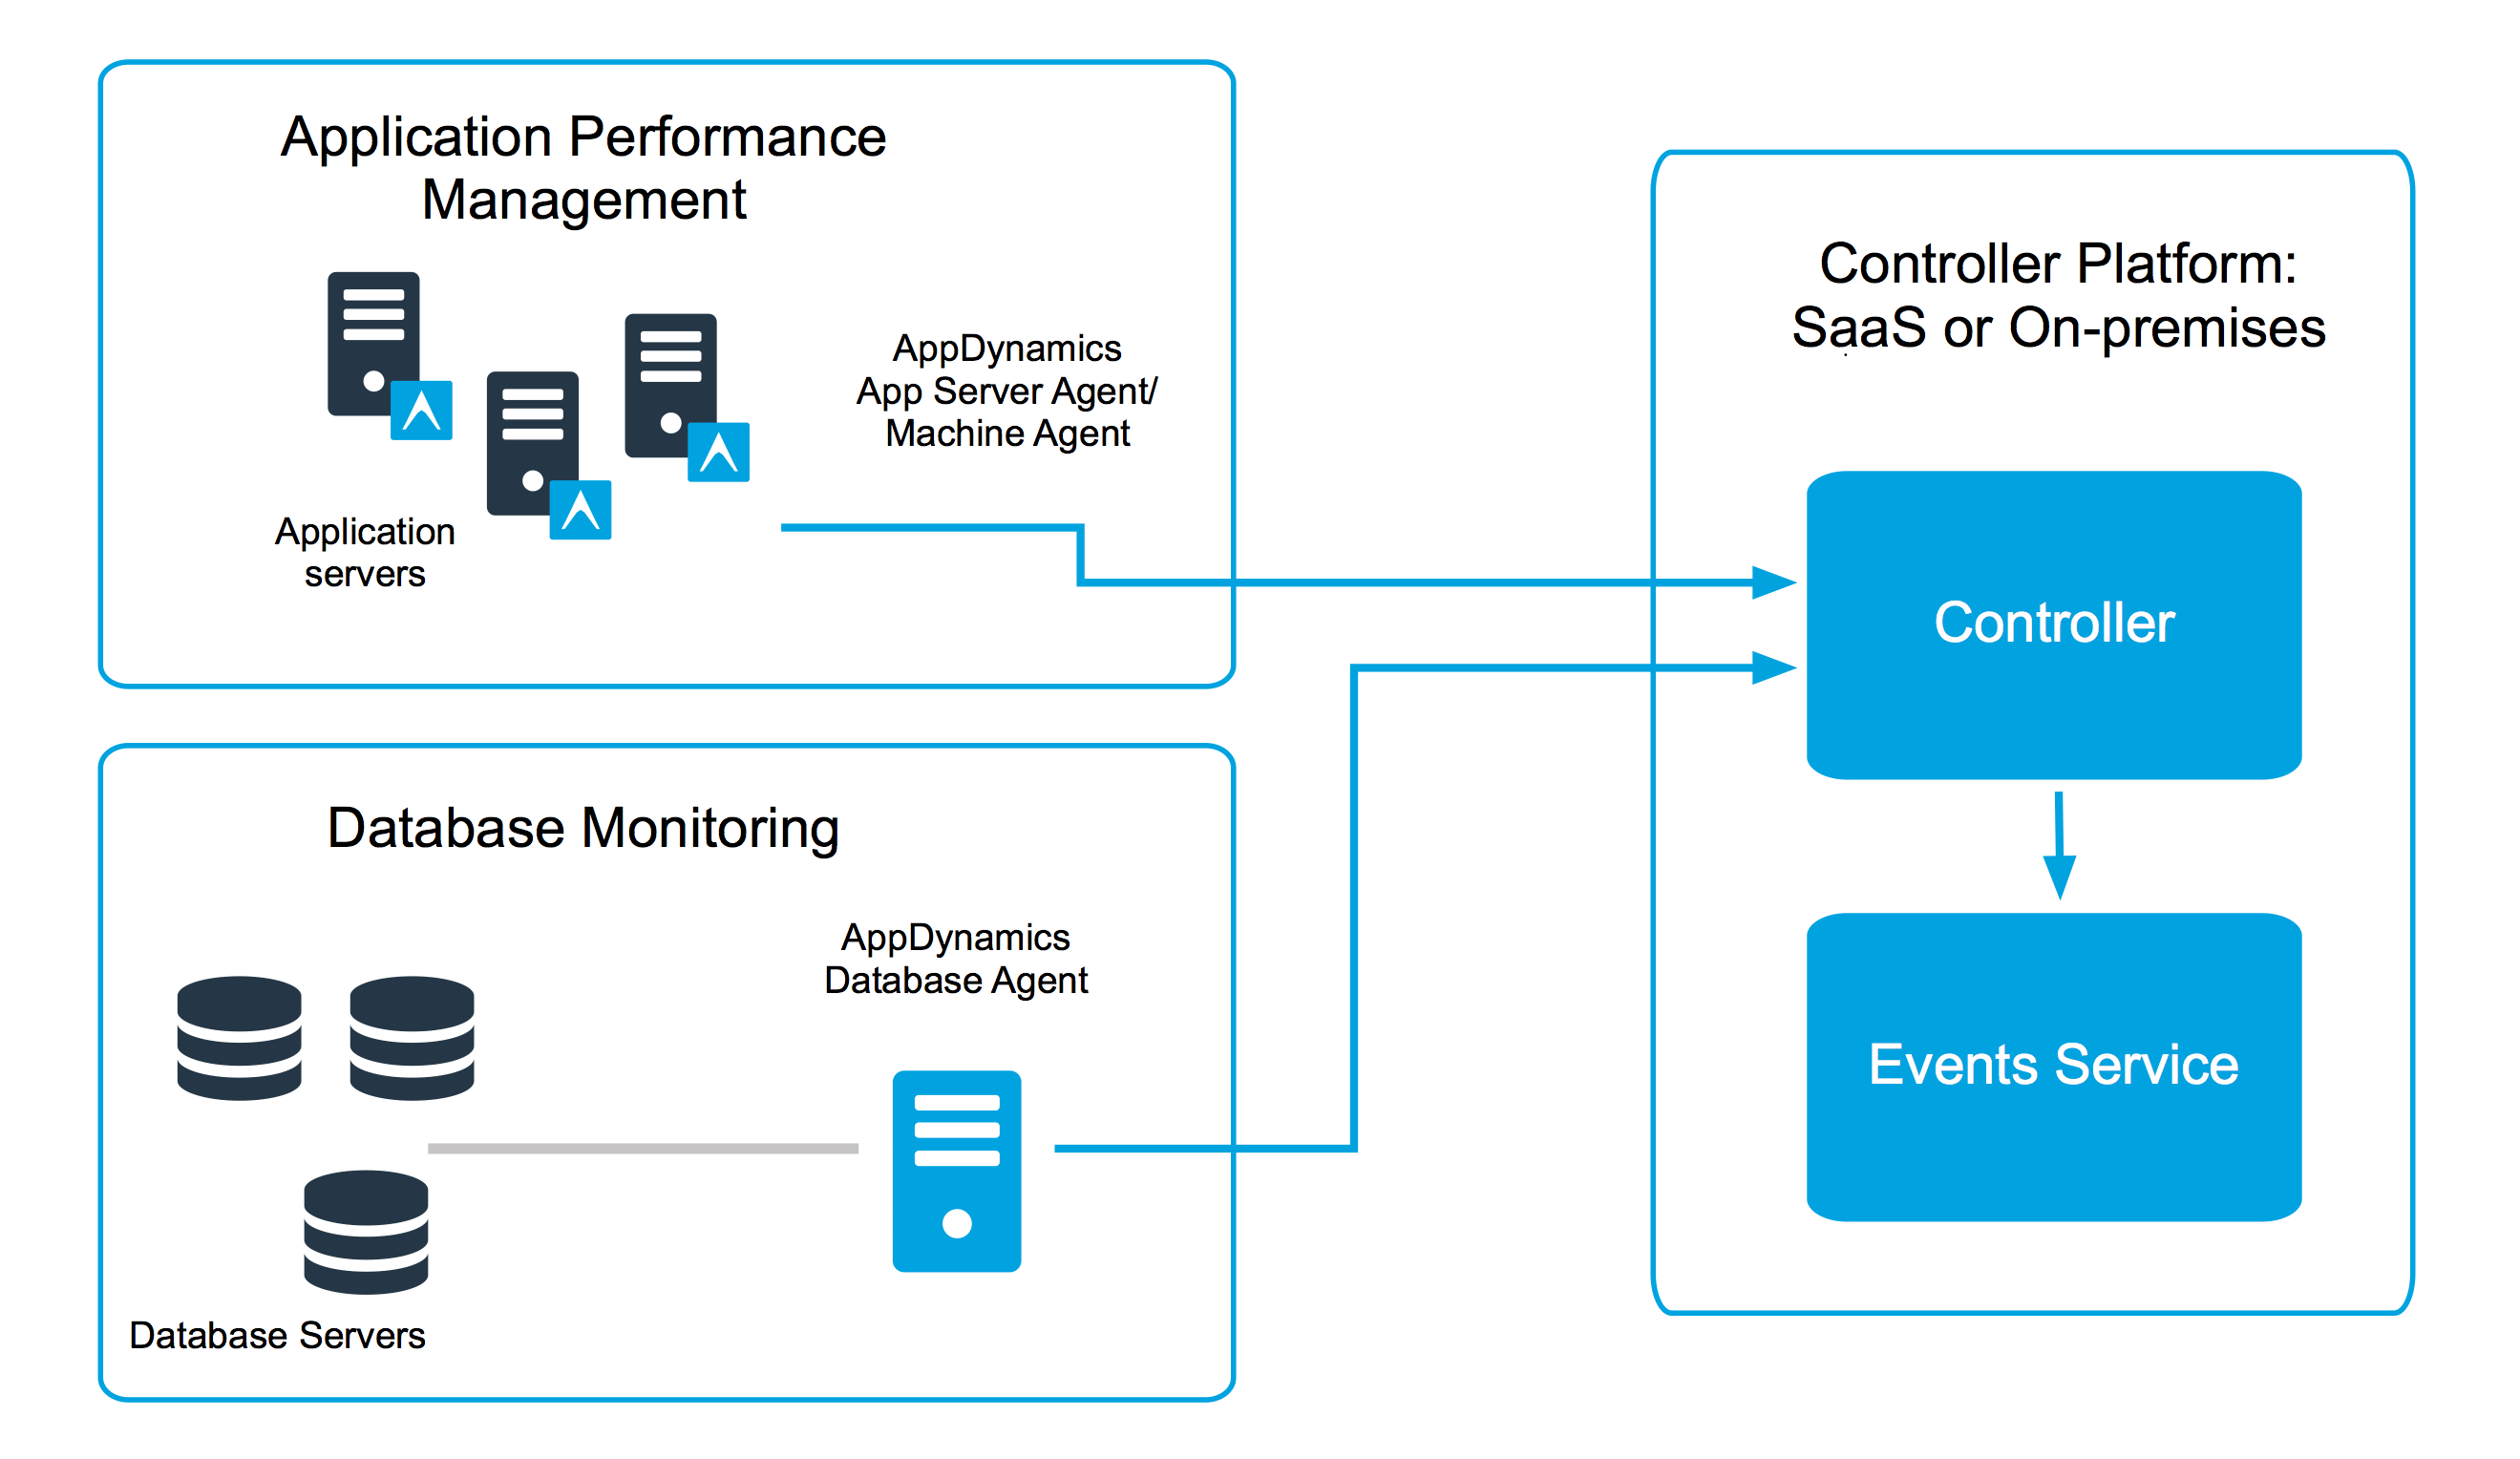 sharepoint 2013 components diagram 93 ford ranger 2 3 wiring javaagents monitoring of java application in appdynamics